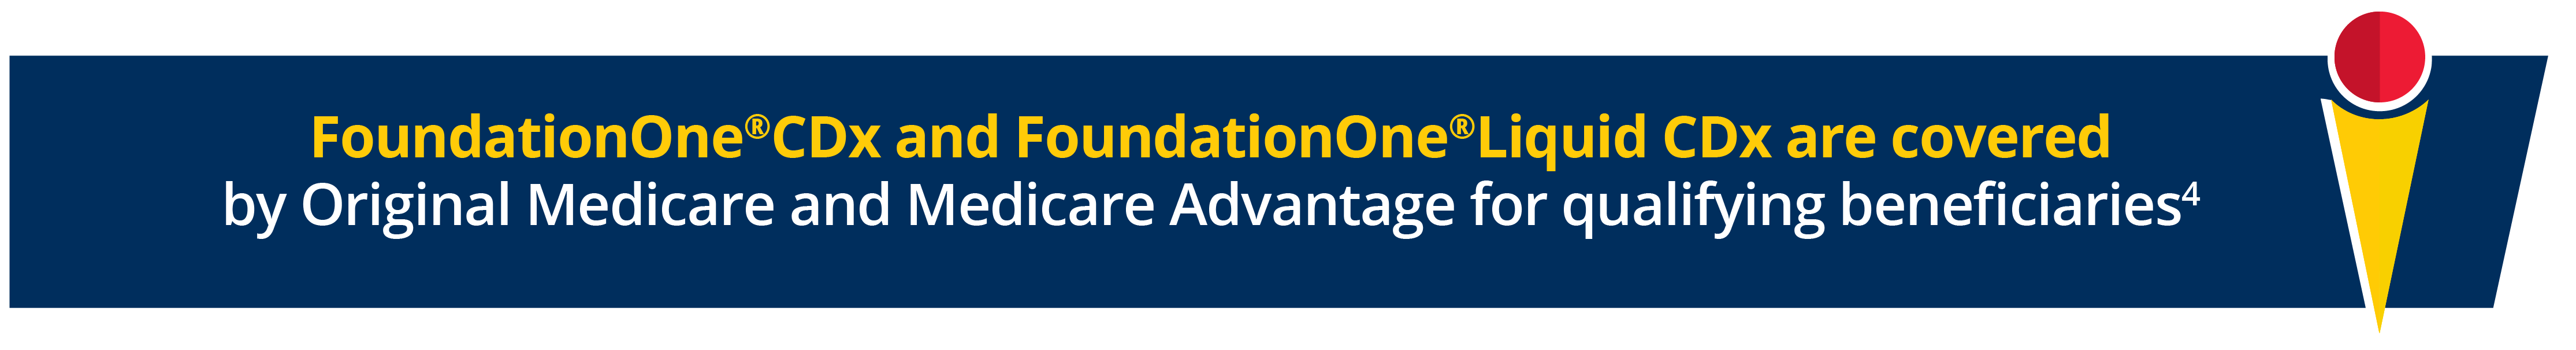 FoundationOne®CDx and FoundationOne®Liquid CDx are covered by Original Medicare and Medicare Advantage for qualifying beneficiaries